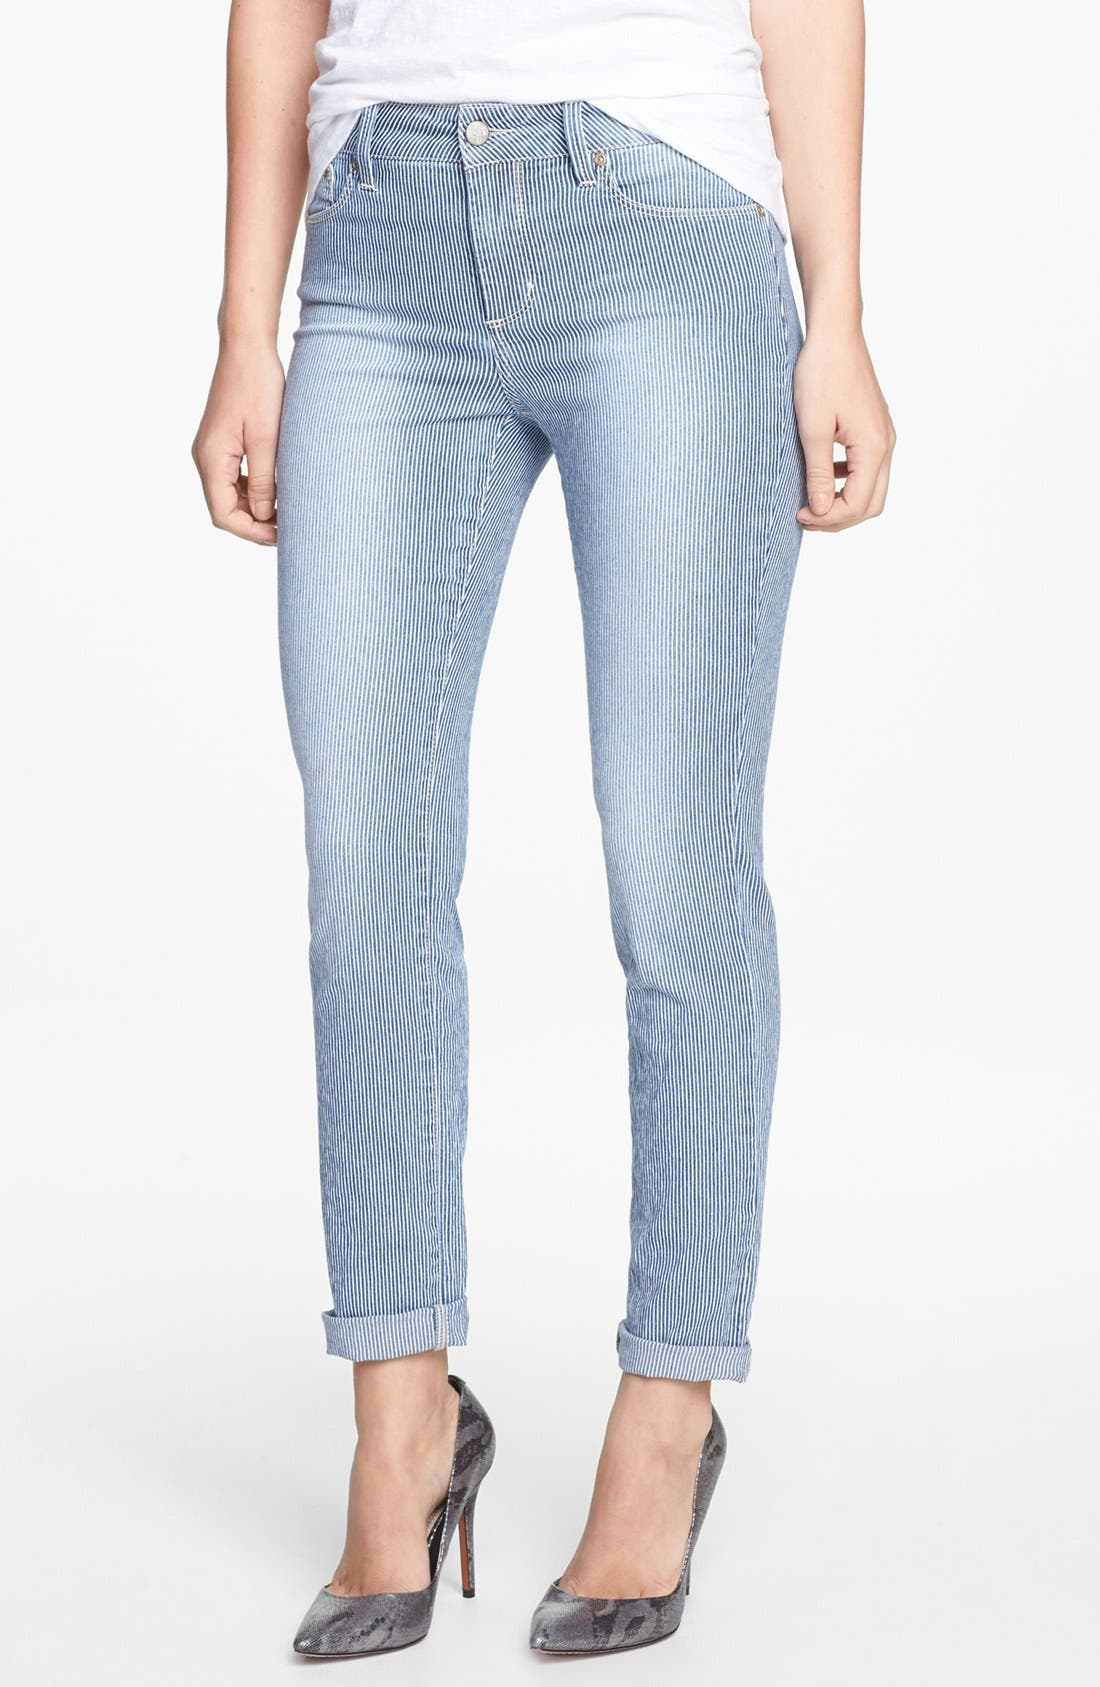 Main Image - NYDJ 'Leann' Stretch Skinny Boyfriend Jeans (Old West Stripe) (Petite)